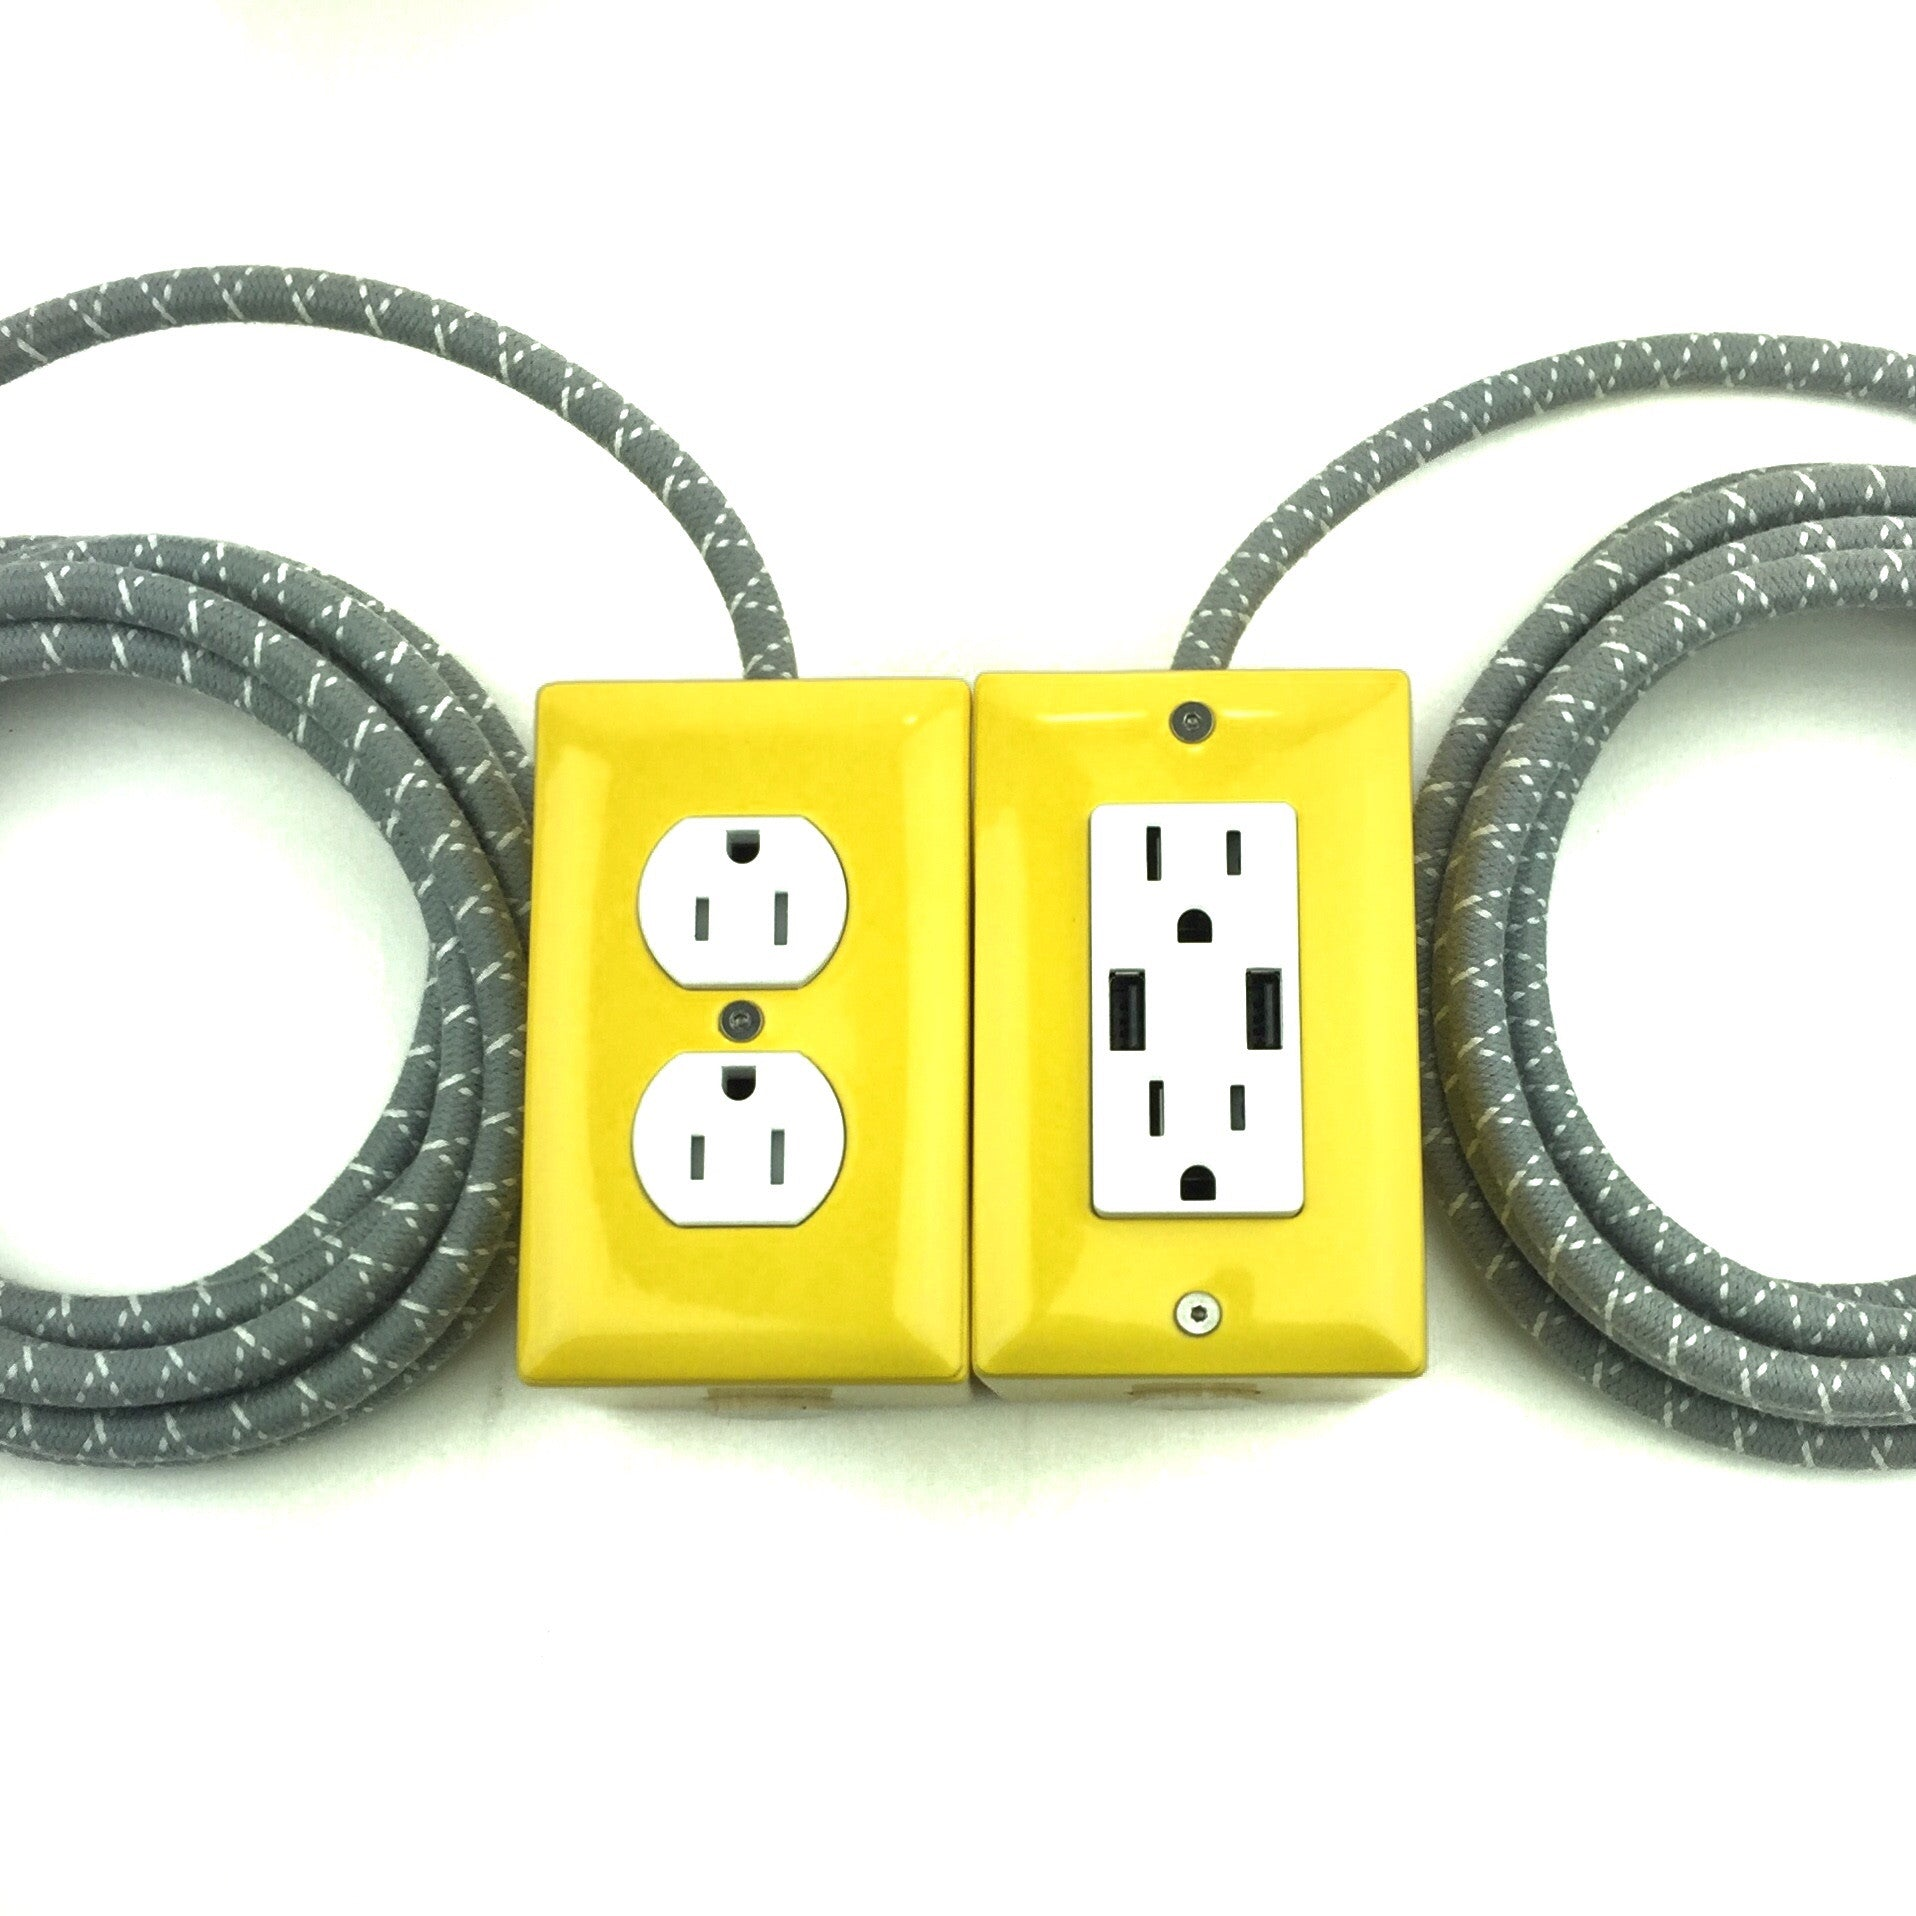 The First Smart Chip Extension Cord - 12' Extō Dual-USB, Dual-Outlet - Tortola Yellow